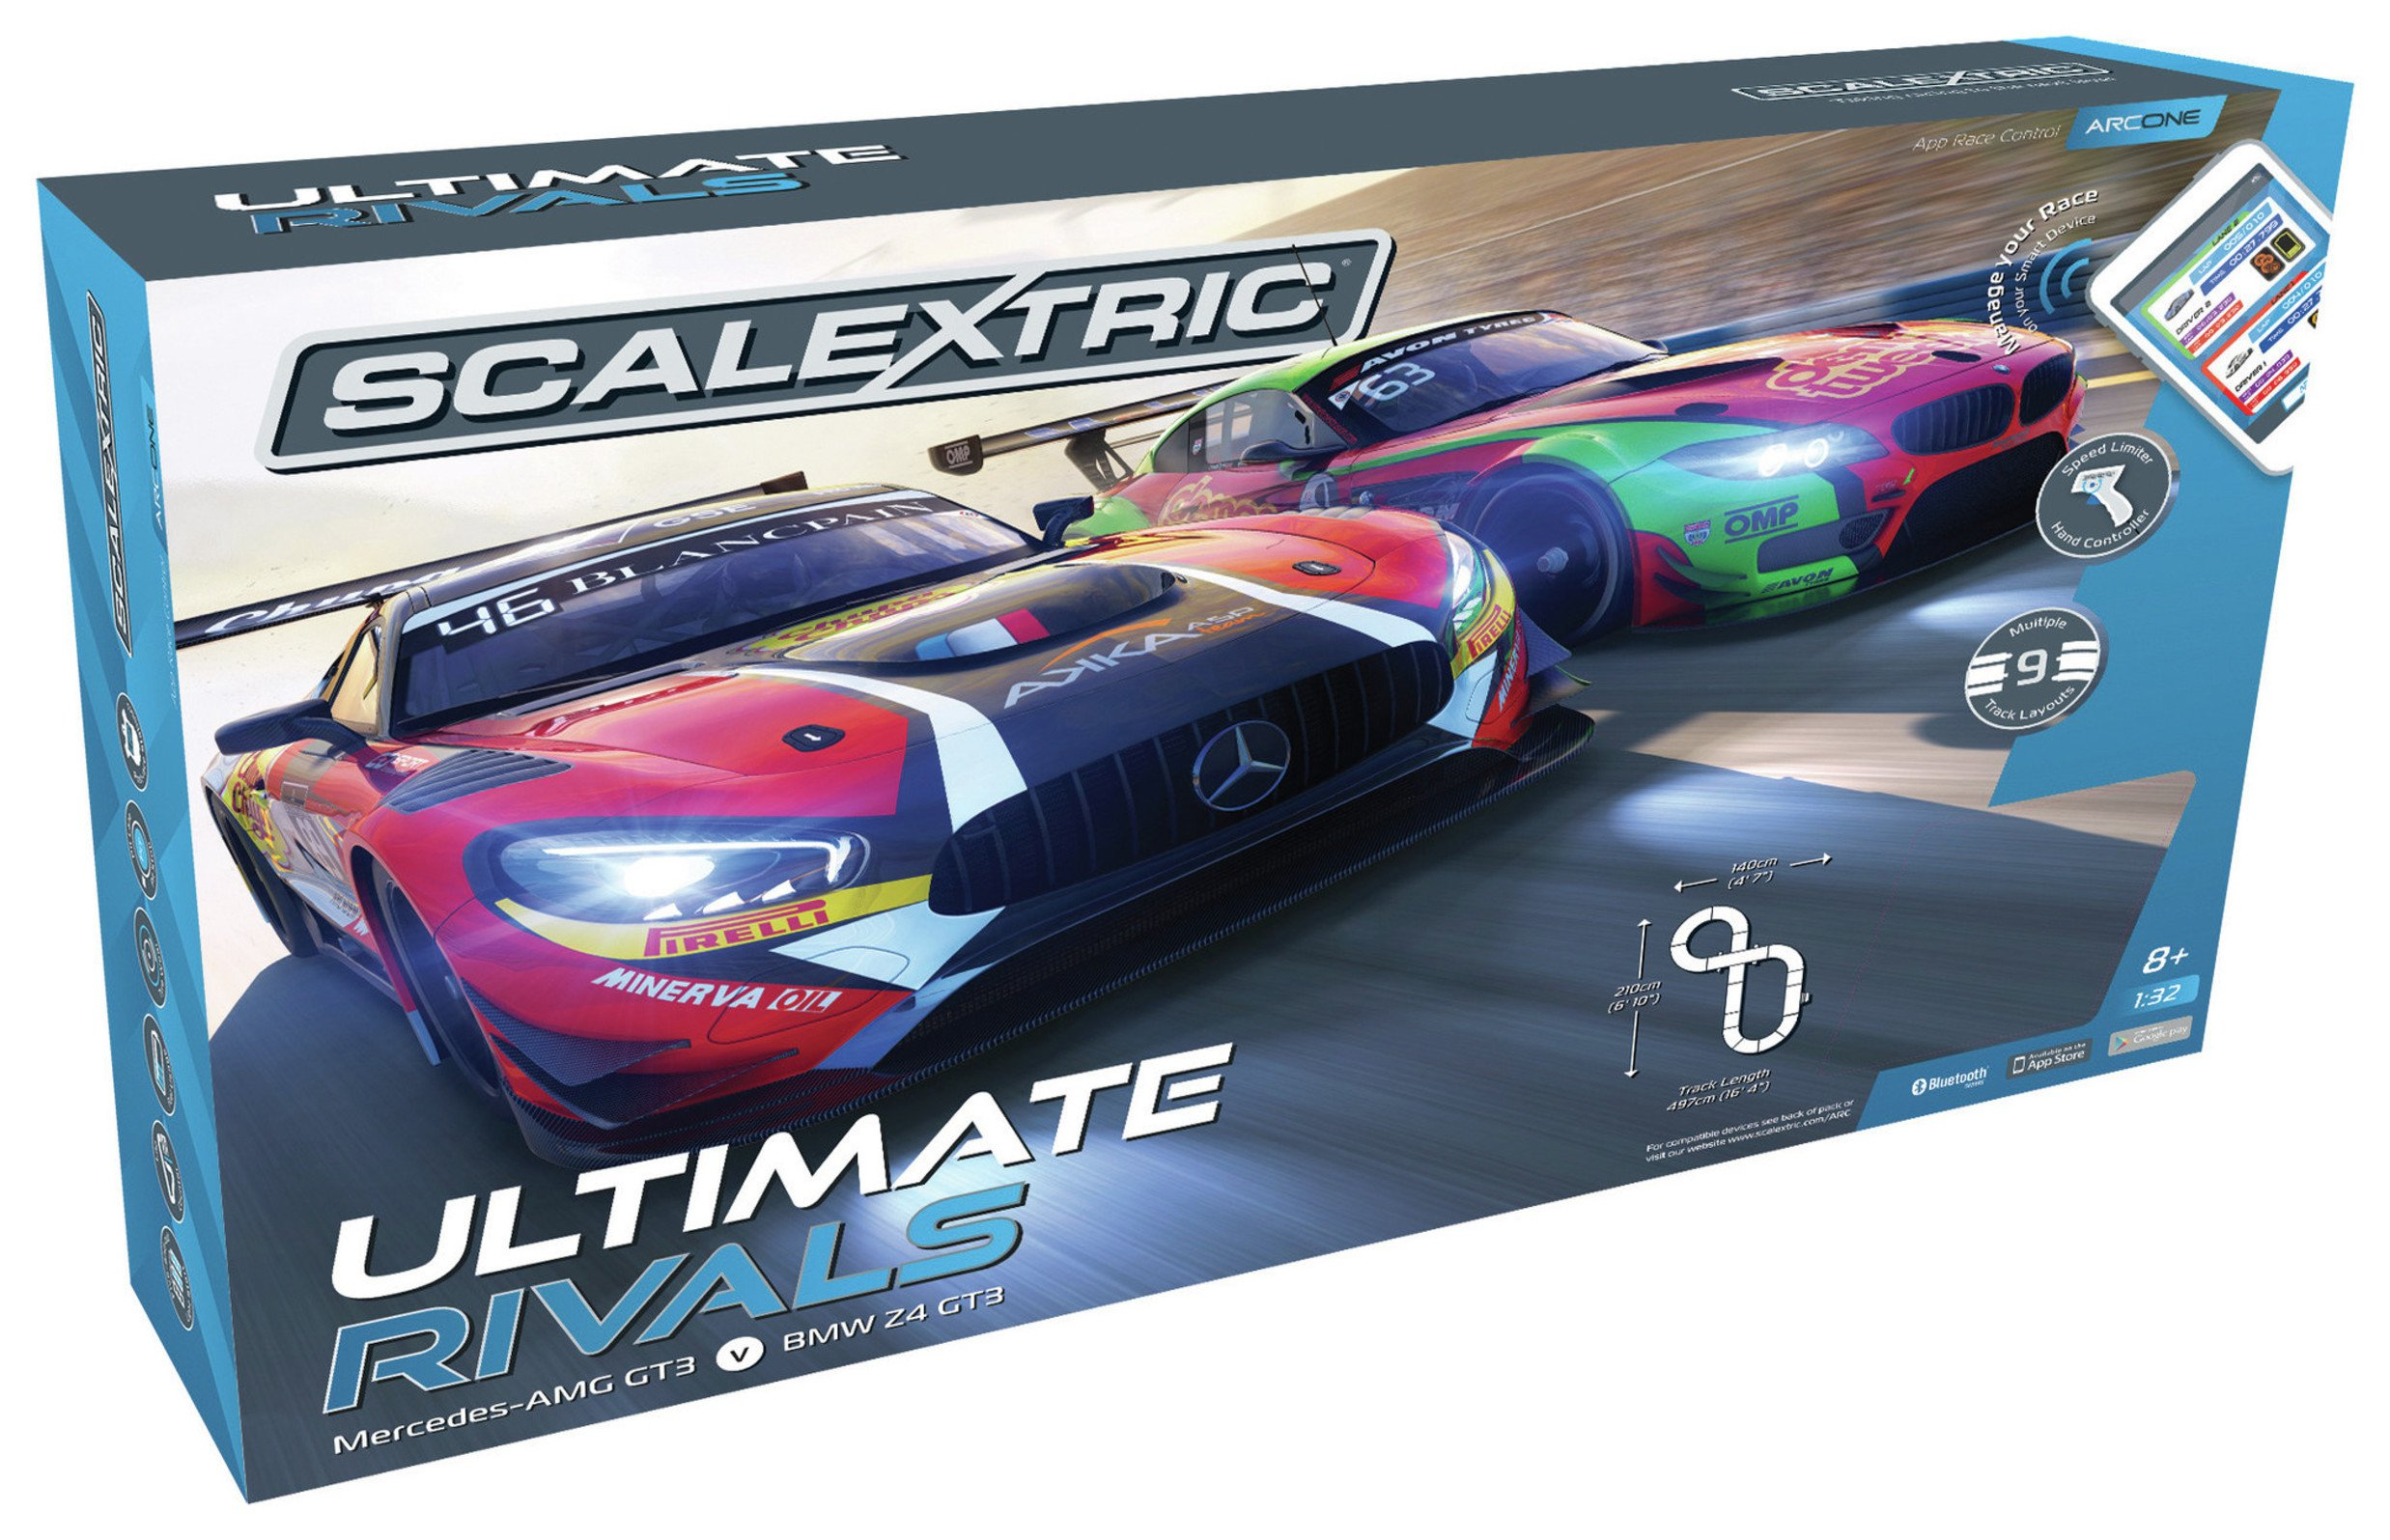 Scalextric Ultimate Rivals Set review